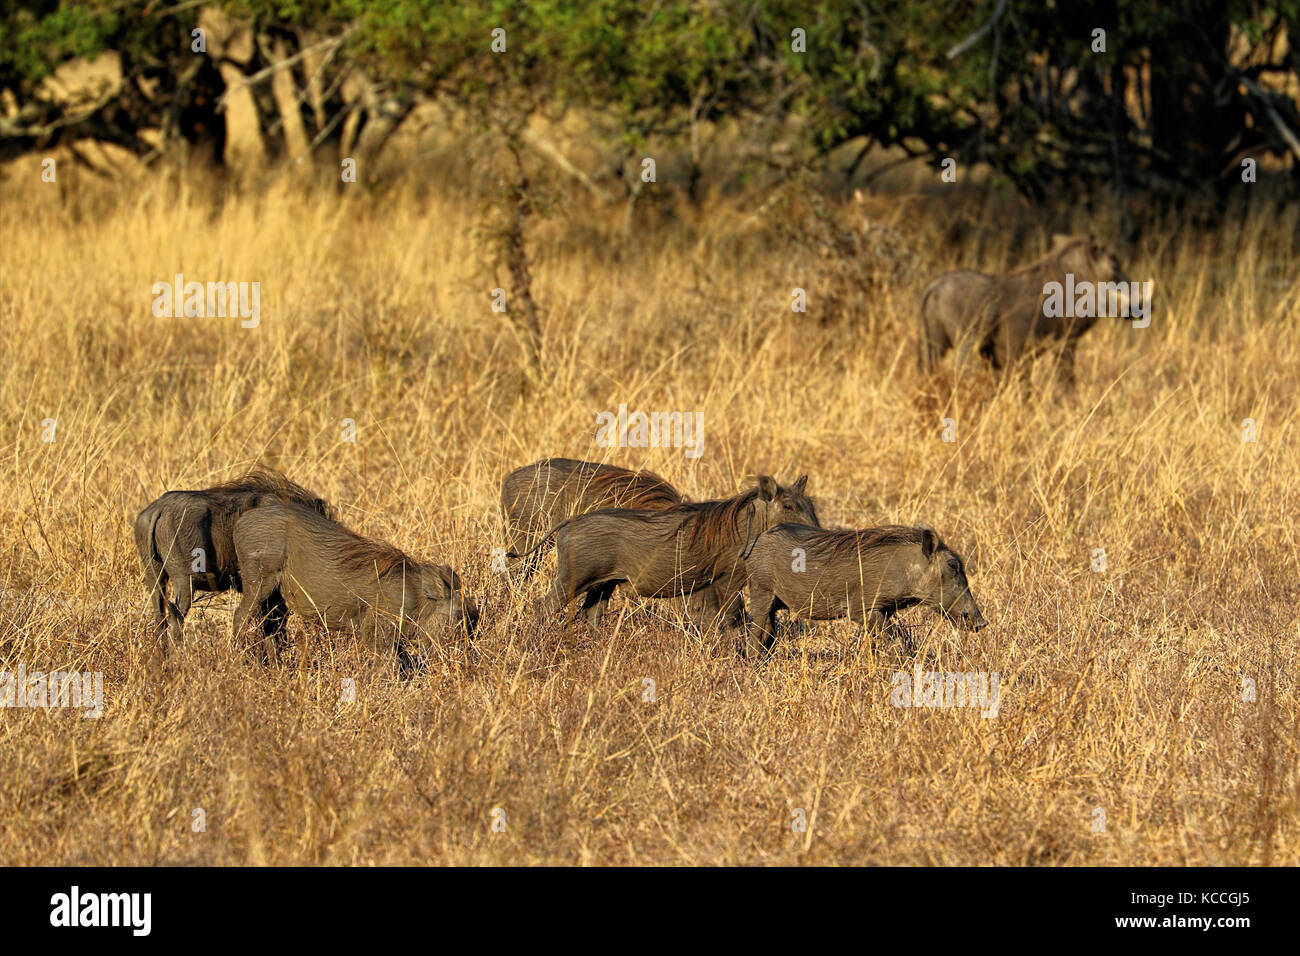 Warthogs (Phacochoerus aethiopicus) in the grass, Kruger National Park, South Africa - Stock Image